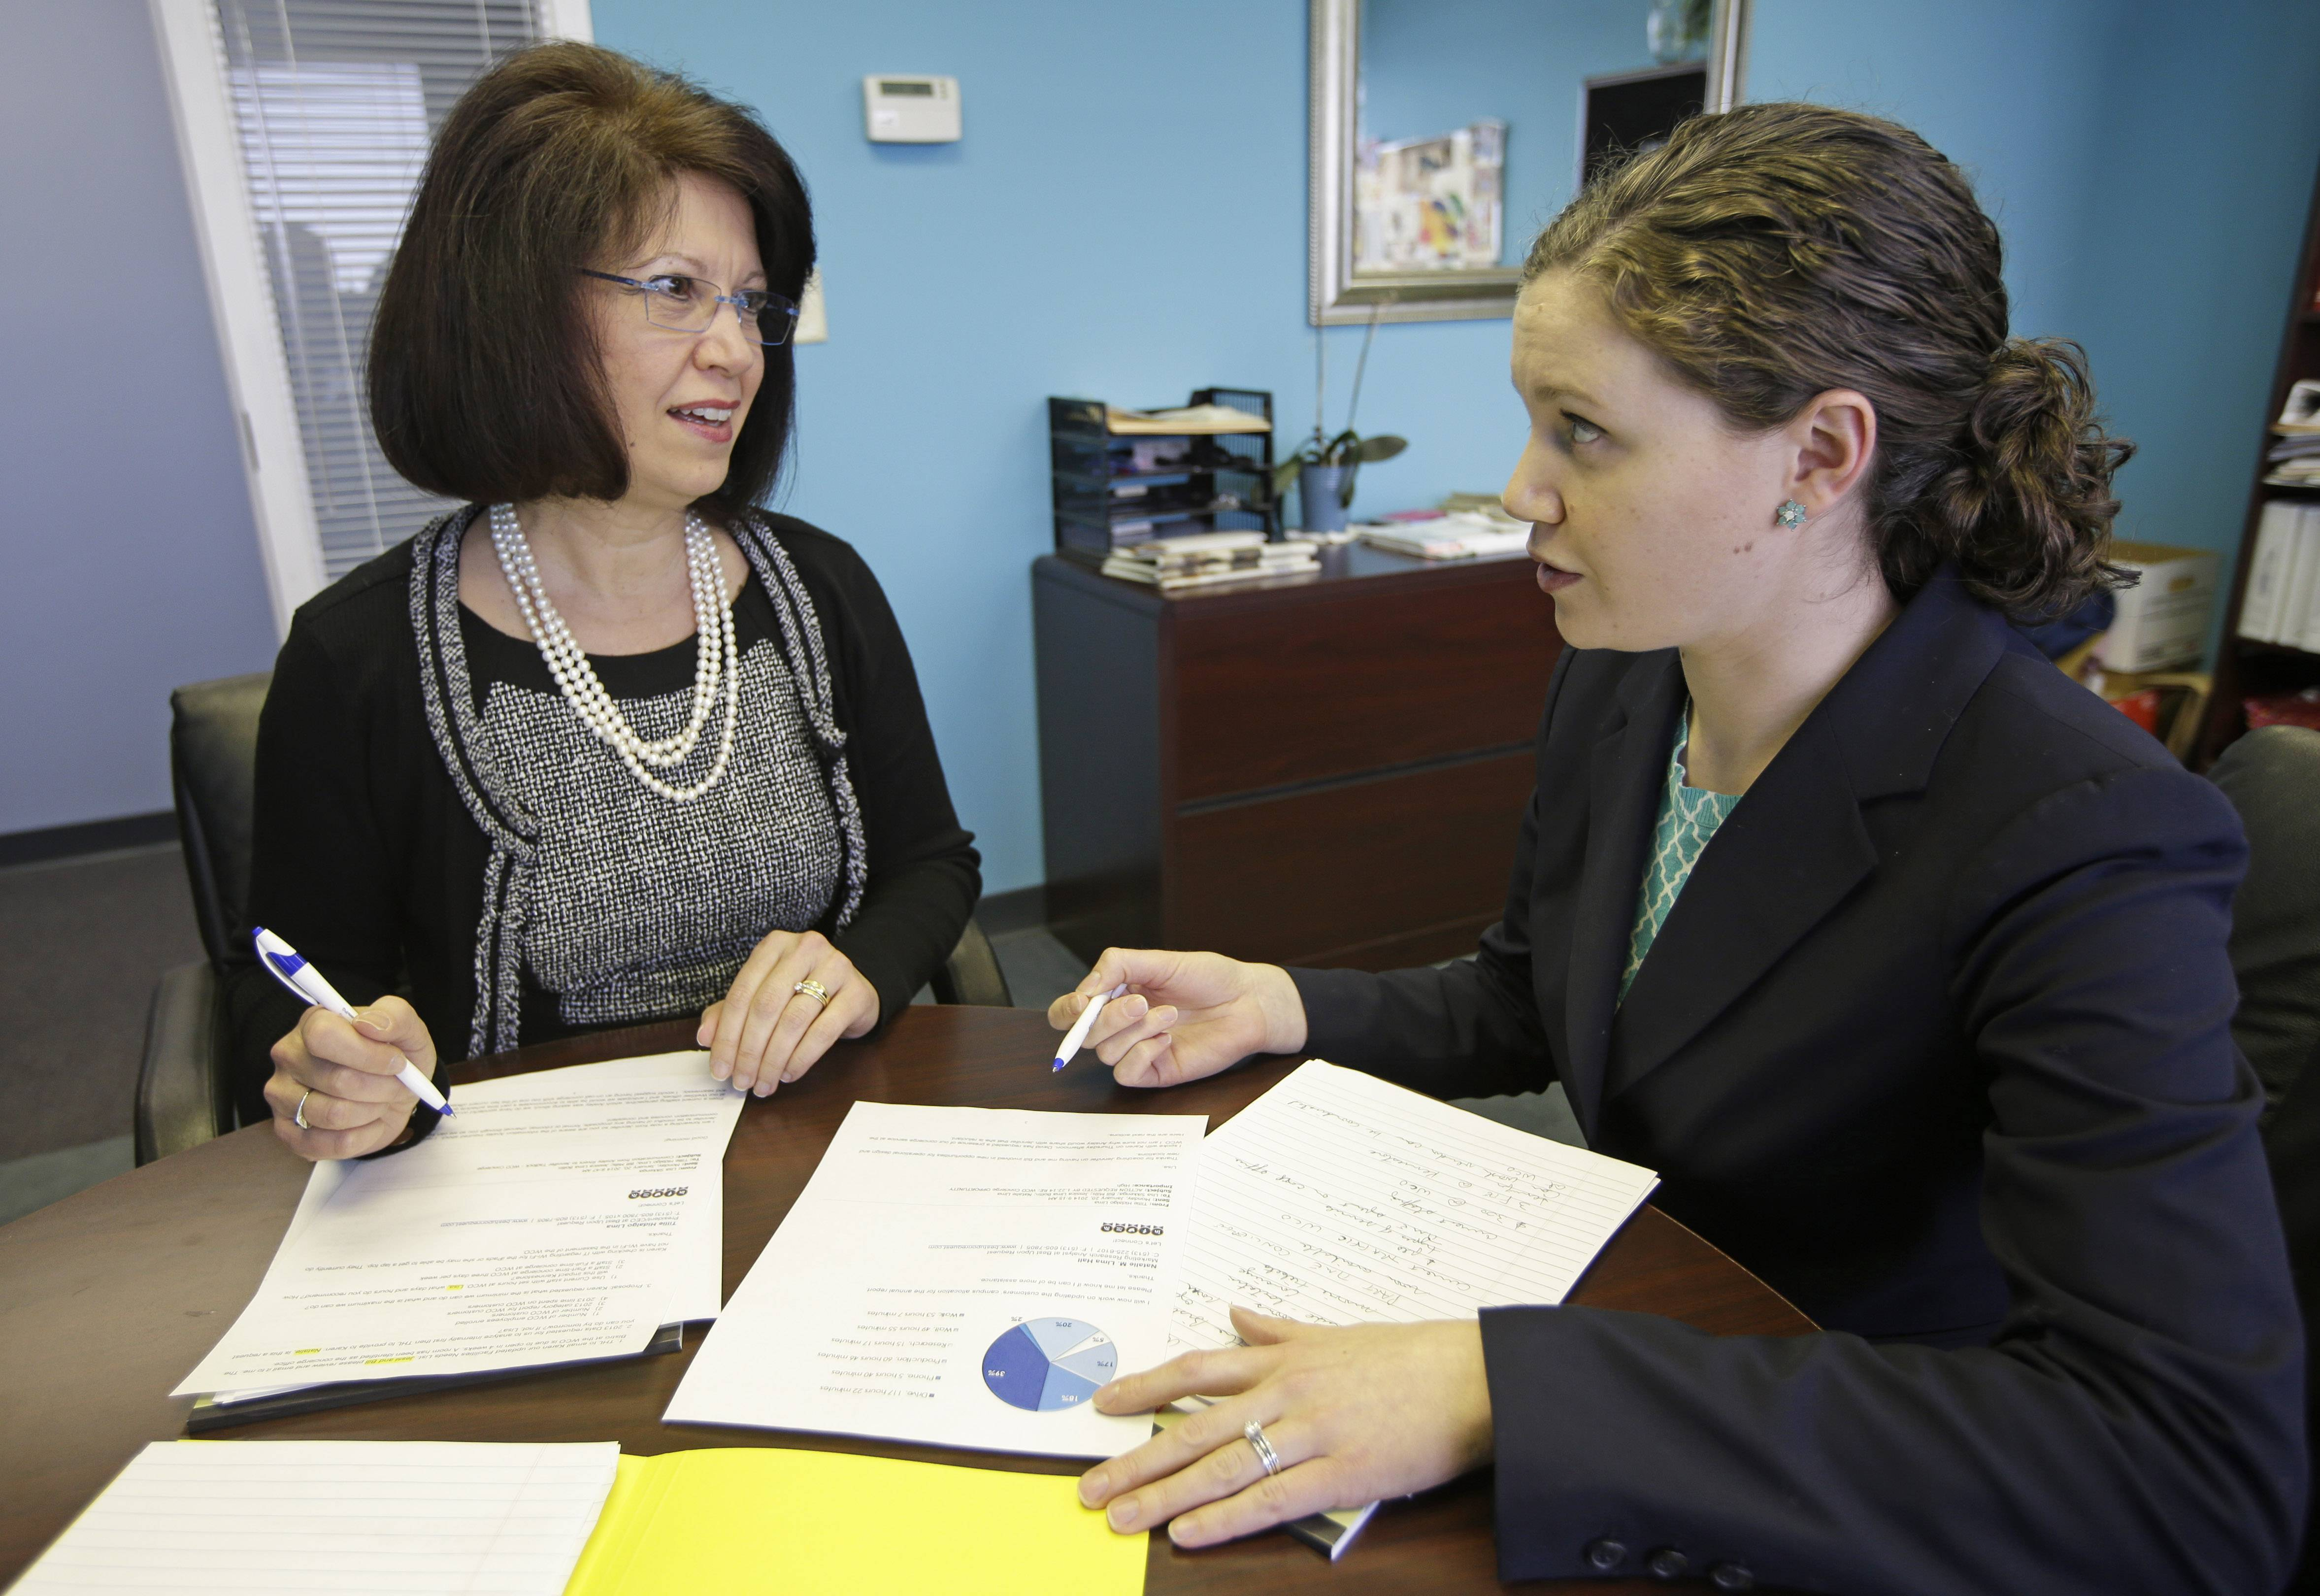 In this Jan. 22, 2014 photo, Tillie Hidalgo Lima, chief executive officer of Best Upon Request, a concierge services provider, left, works with marketing director Jessica Lima Bollin in their offices in Cincinnati. A mentoring program created by the Cincinnati USA Regional Chamber called a minority business accelerator has helped Lima get contracts with Fifth Third Bank Corp. and the Cincinnati Children's Hospital Medical Center.